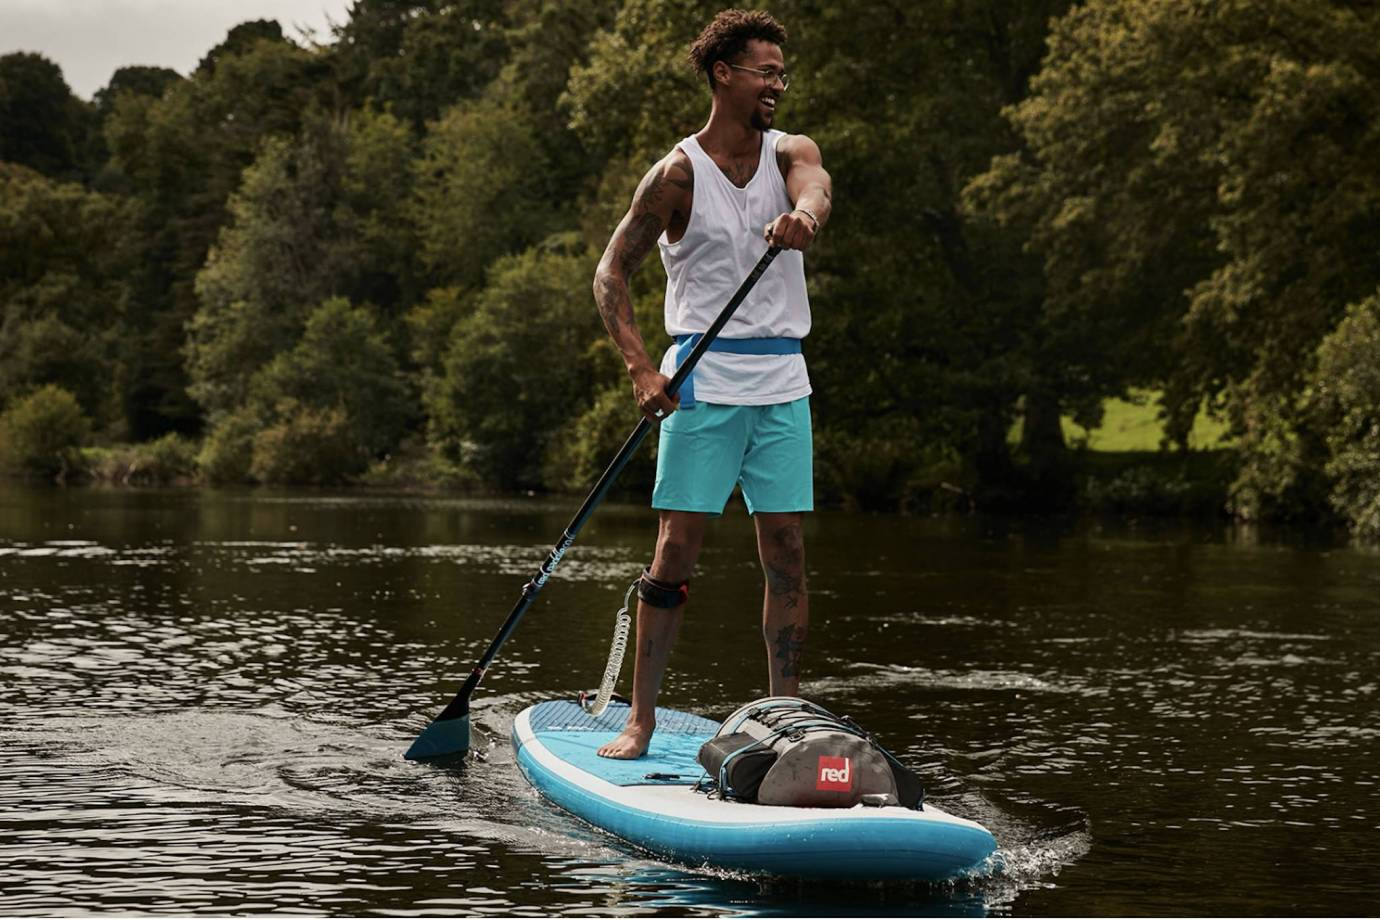 African American man in teal boardshorts paddleboarding on flatwater